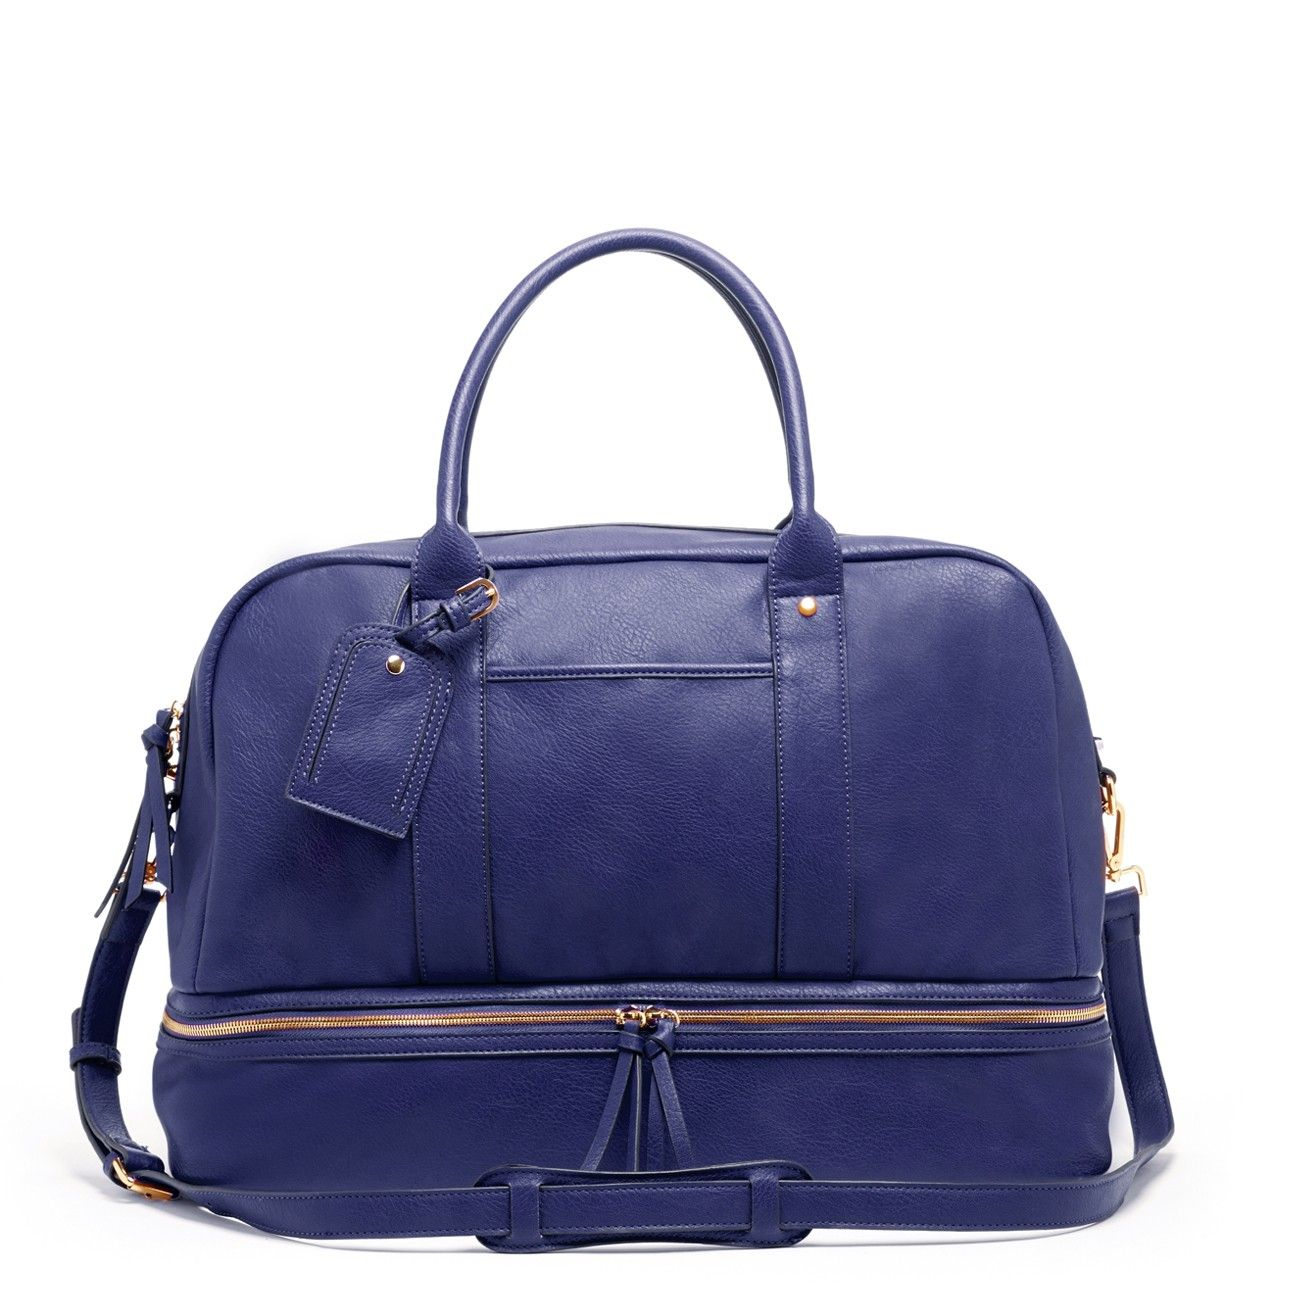 Roomy Midnight Blue Travel Bag With A Zippered Shoe Compartment And Removable Crossbody Strap Great For Weekend Trips